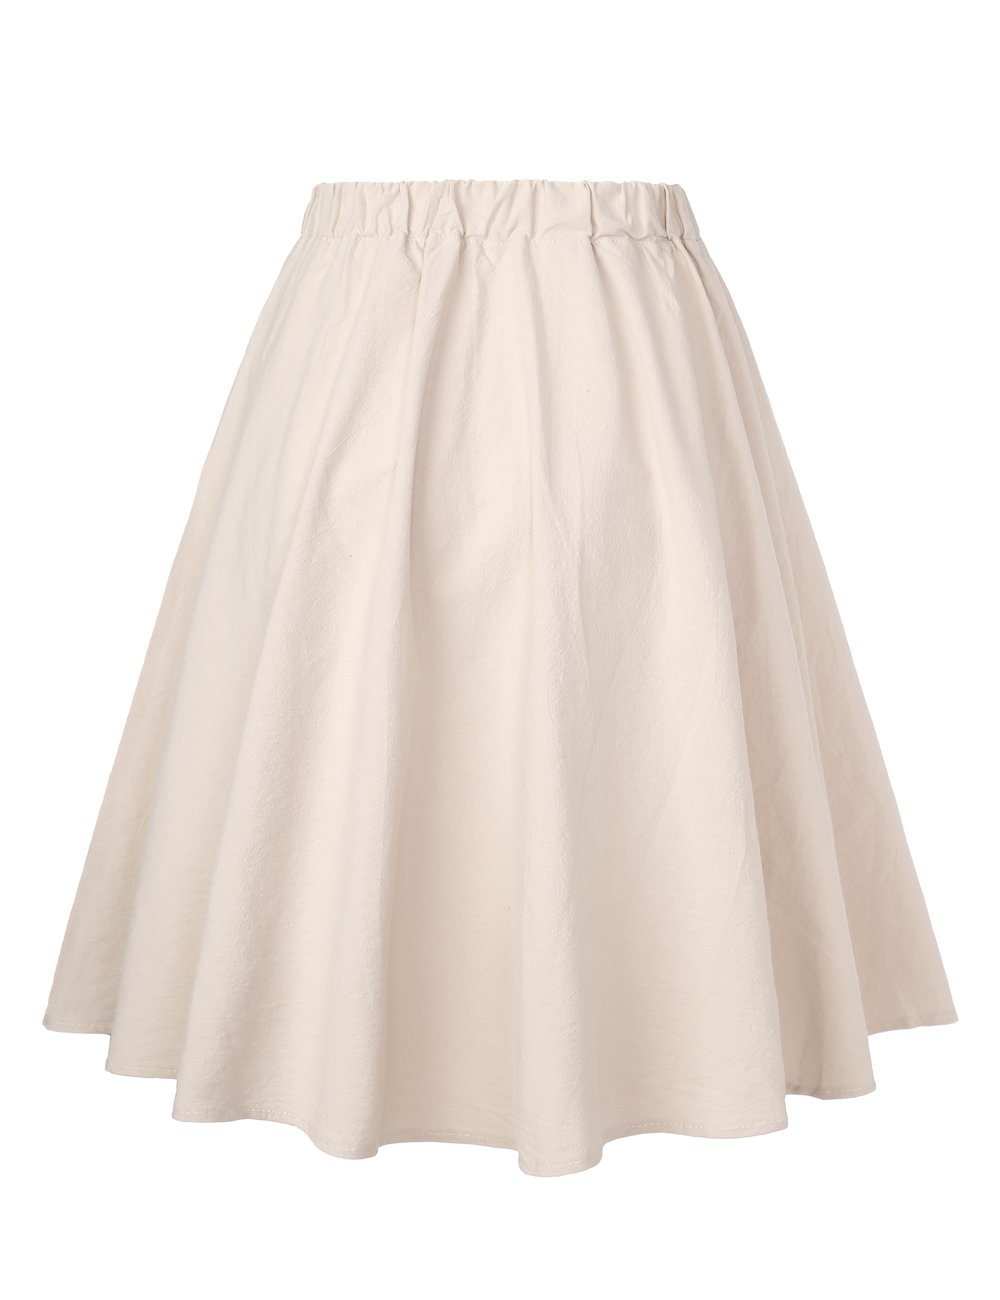 BaiShengGT Casual Skirts for Women, Women's A-Line High Waisted Button Front Pleated Midi Skirt with Elastic Waist Knee Length One Size(fit S-M) Apricot-False Drawstring by BaiShengGT (Image #2)